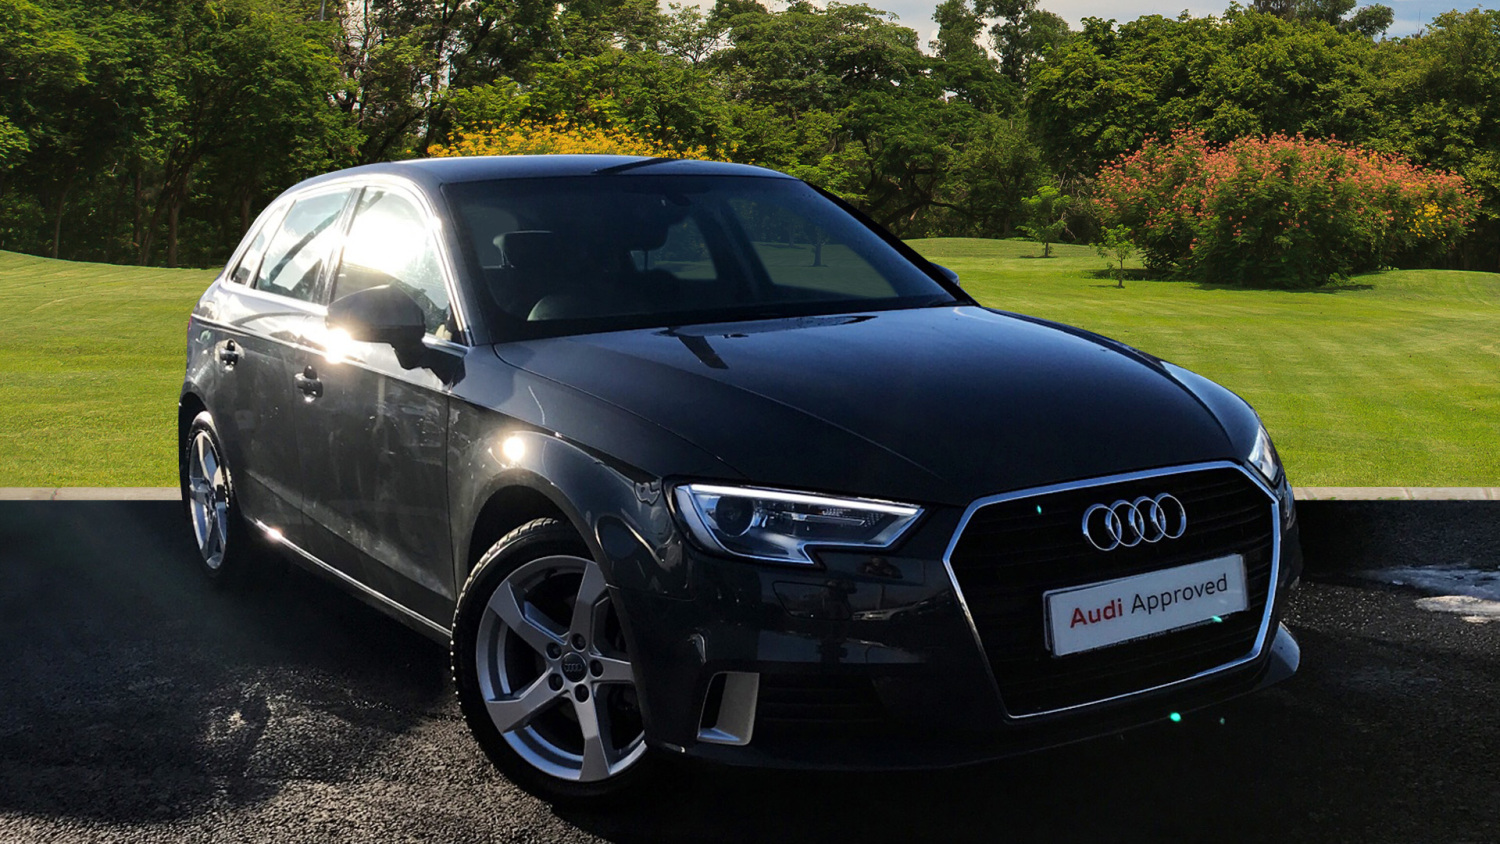 used audi a3 2 0 tdi sport 5dr diesel hatchback for sale bristol street motors. Black Bedroom Furniture Sets. Home Design Ideas